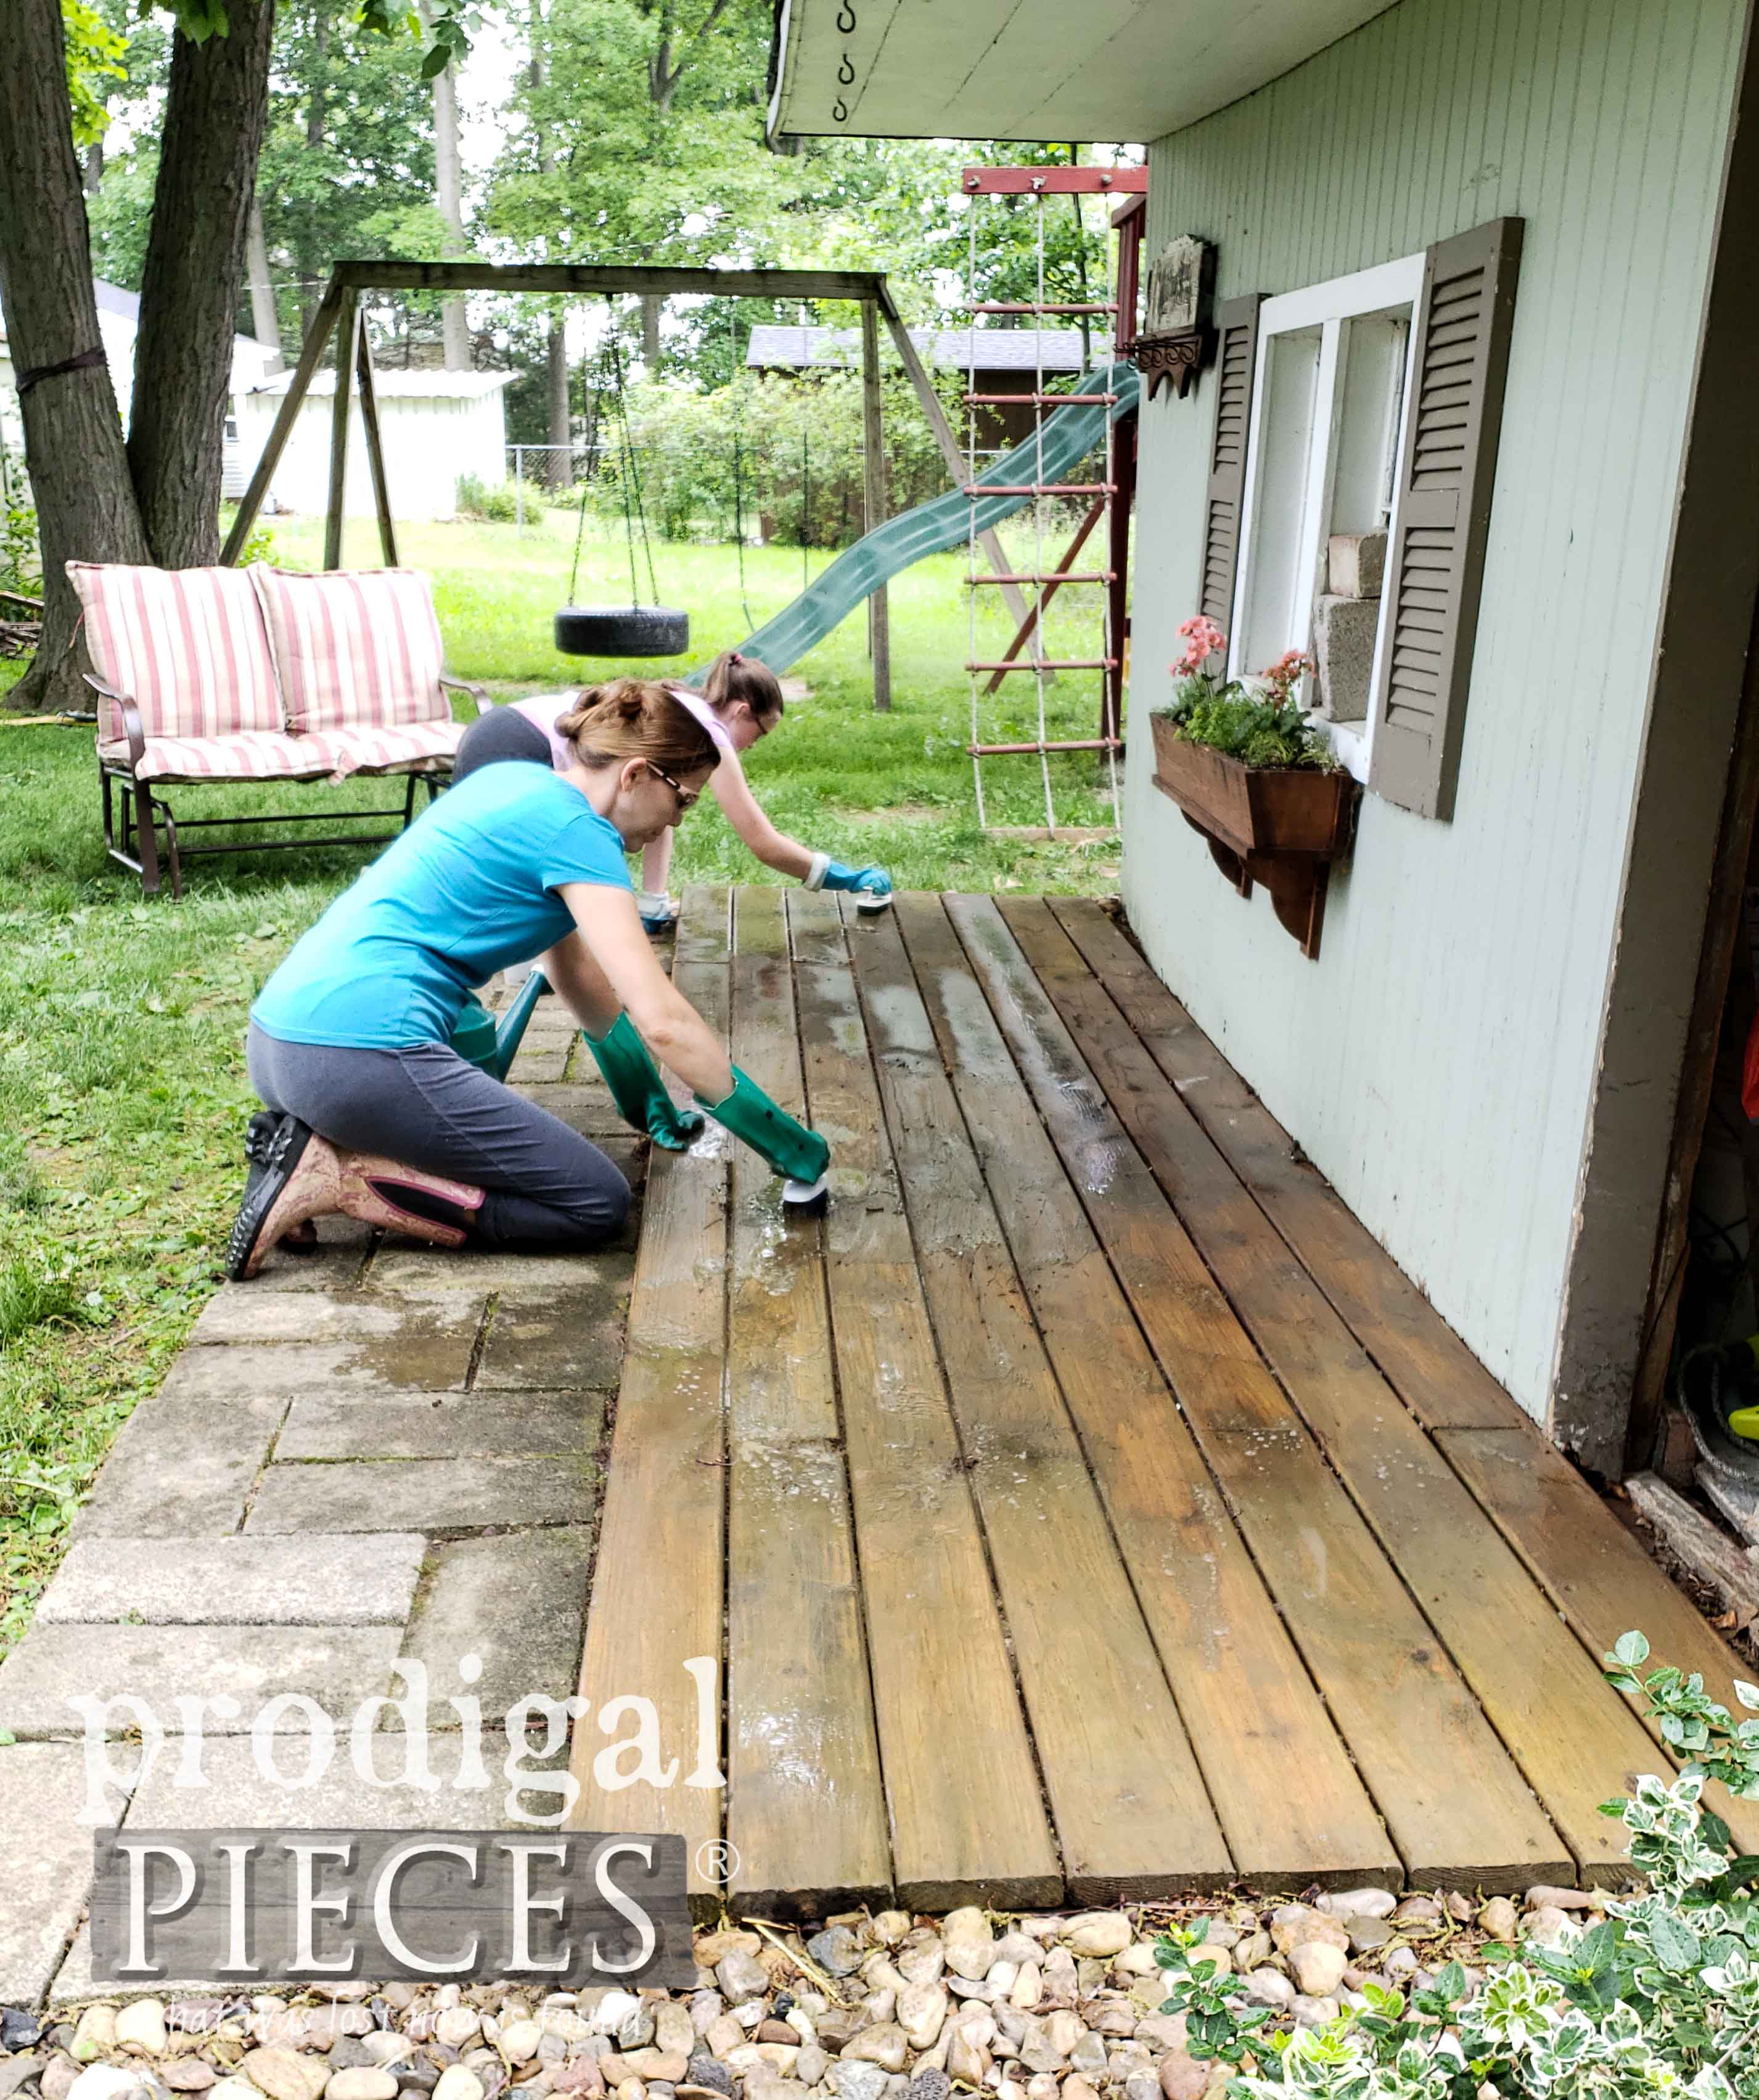 Scrubbing Dirty Garden Shed Deck by Prodigal Pieces | prodigalpieces.com